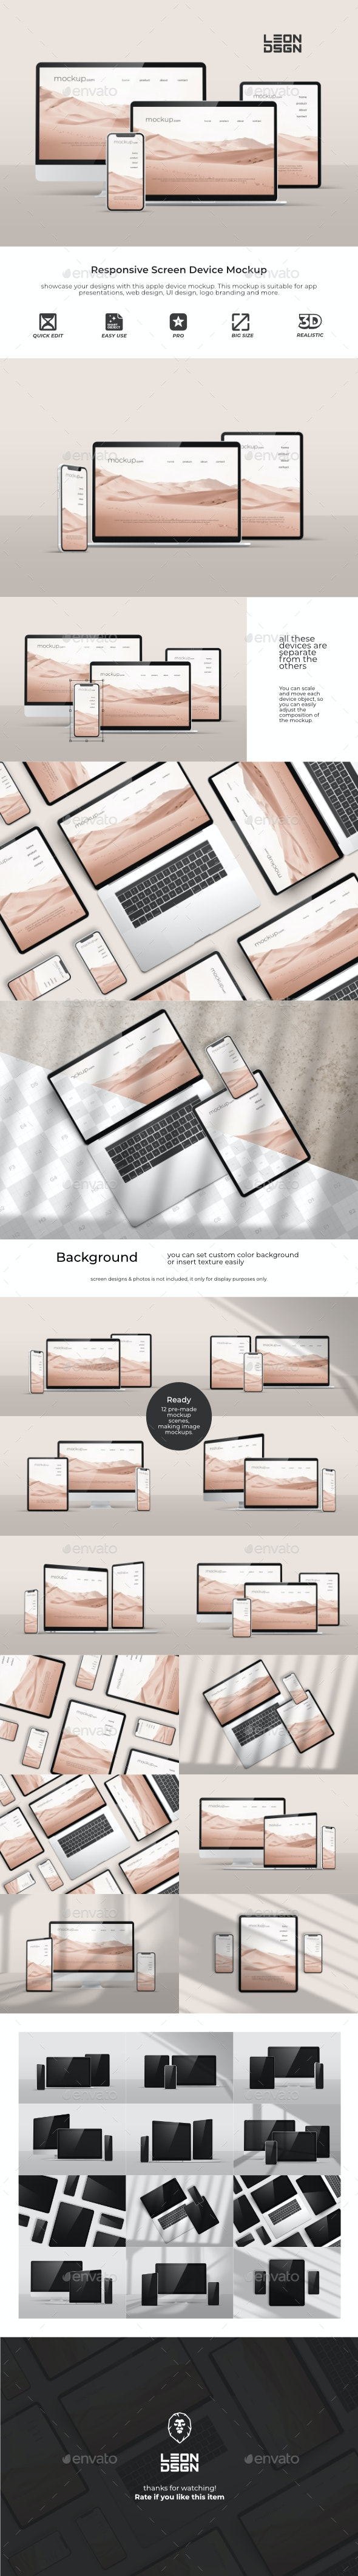 Responsive Screen Device - Mockup - Displays Product Mock-Ups